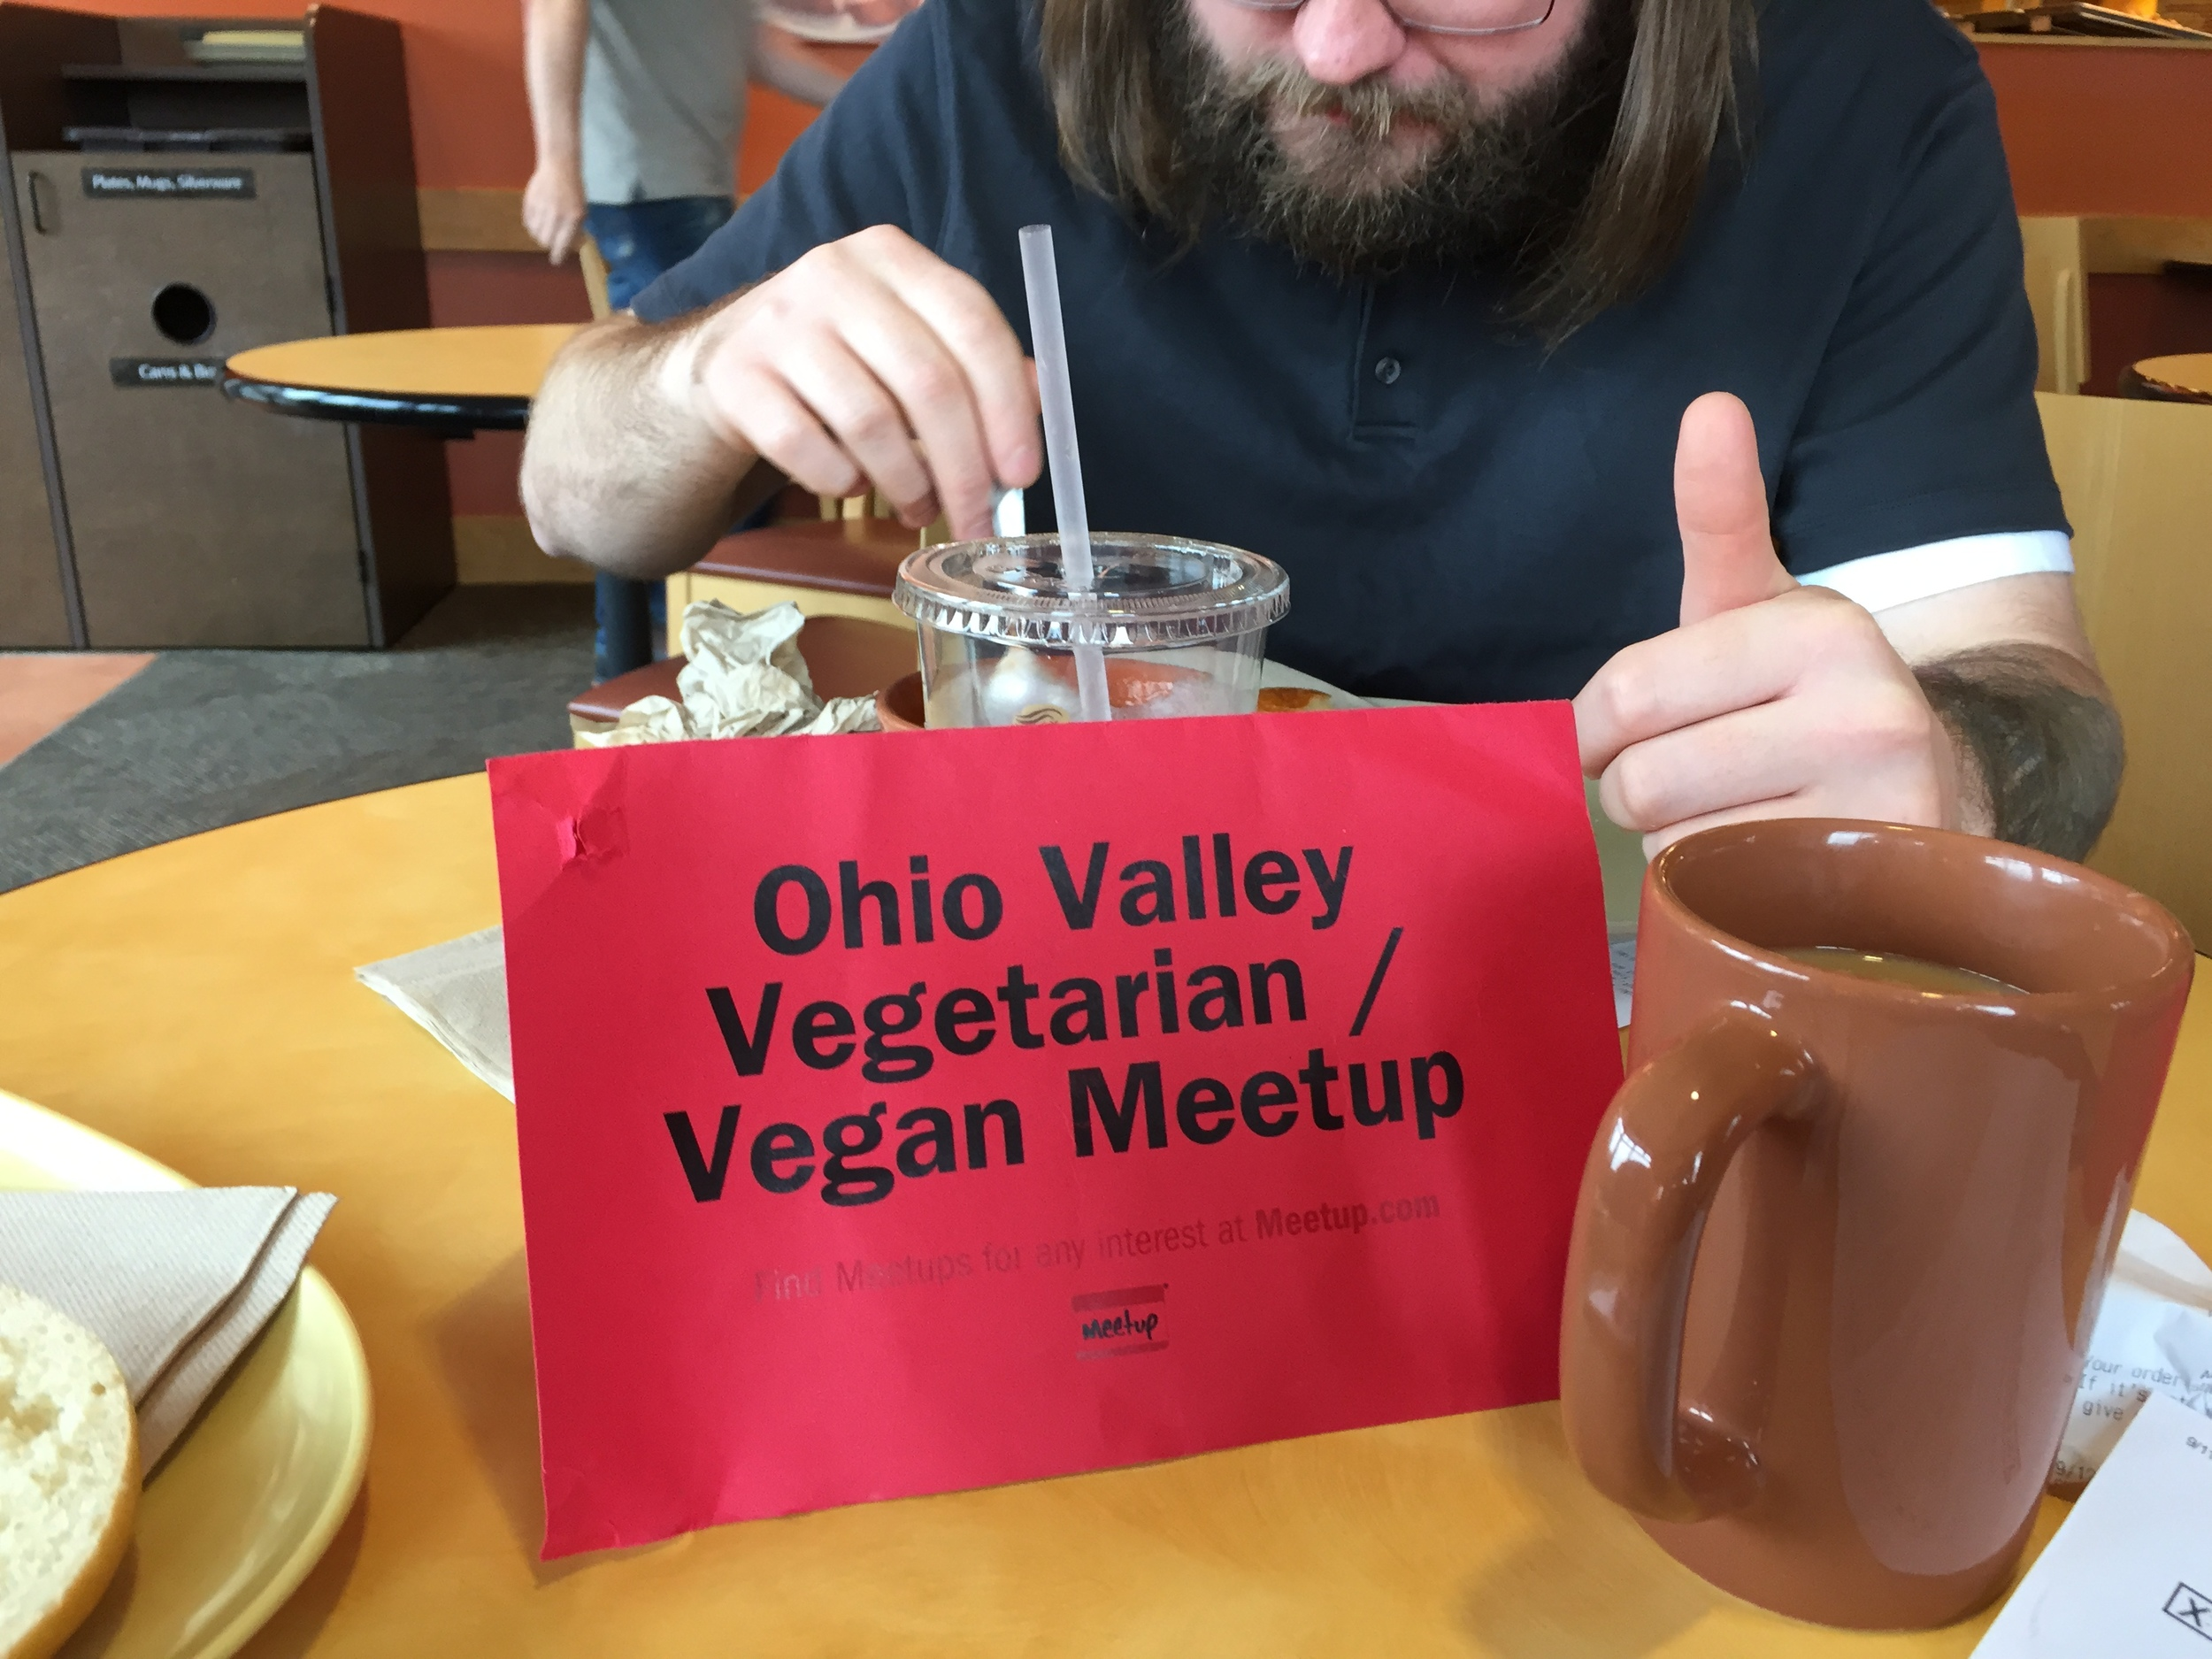 Member of the Ohio Valley Vegetarian/Vegan Meetup Club dine out regularly at restaurants about town, sampling what the area offers in the way of meatless meals.